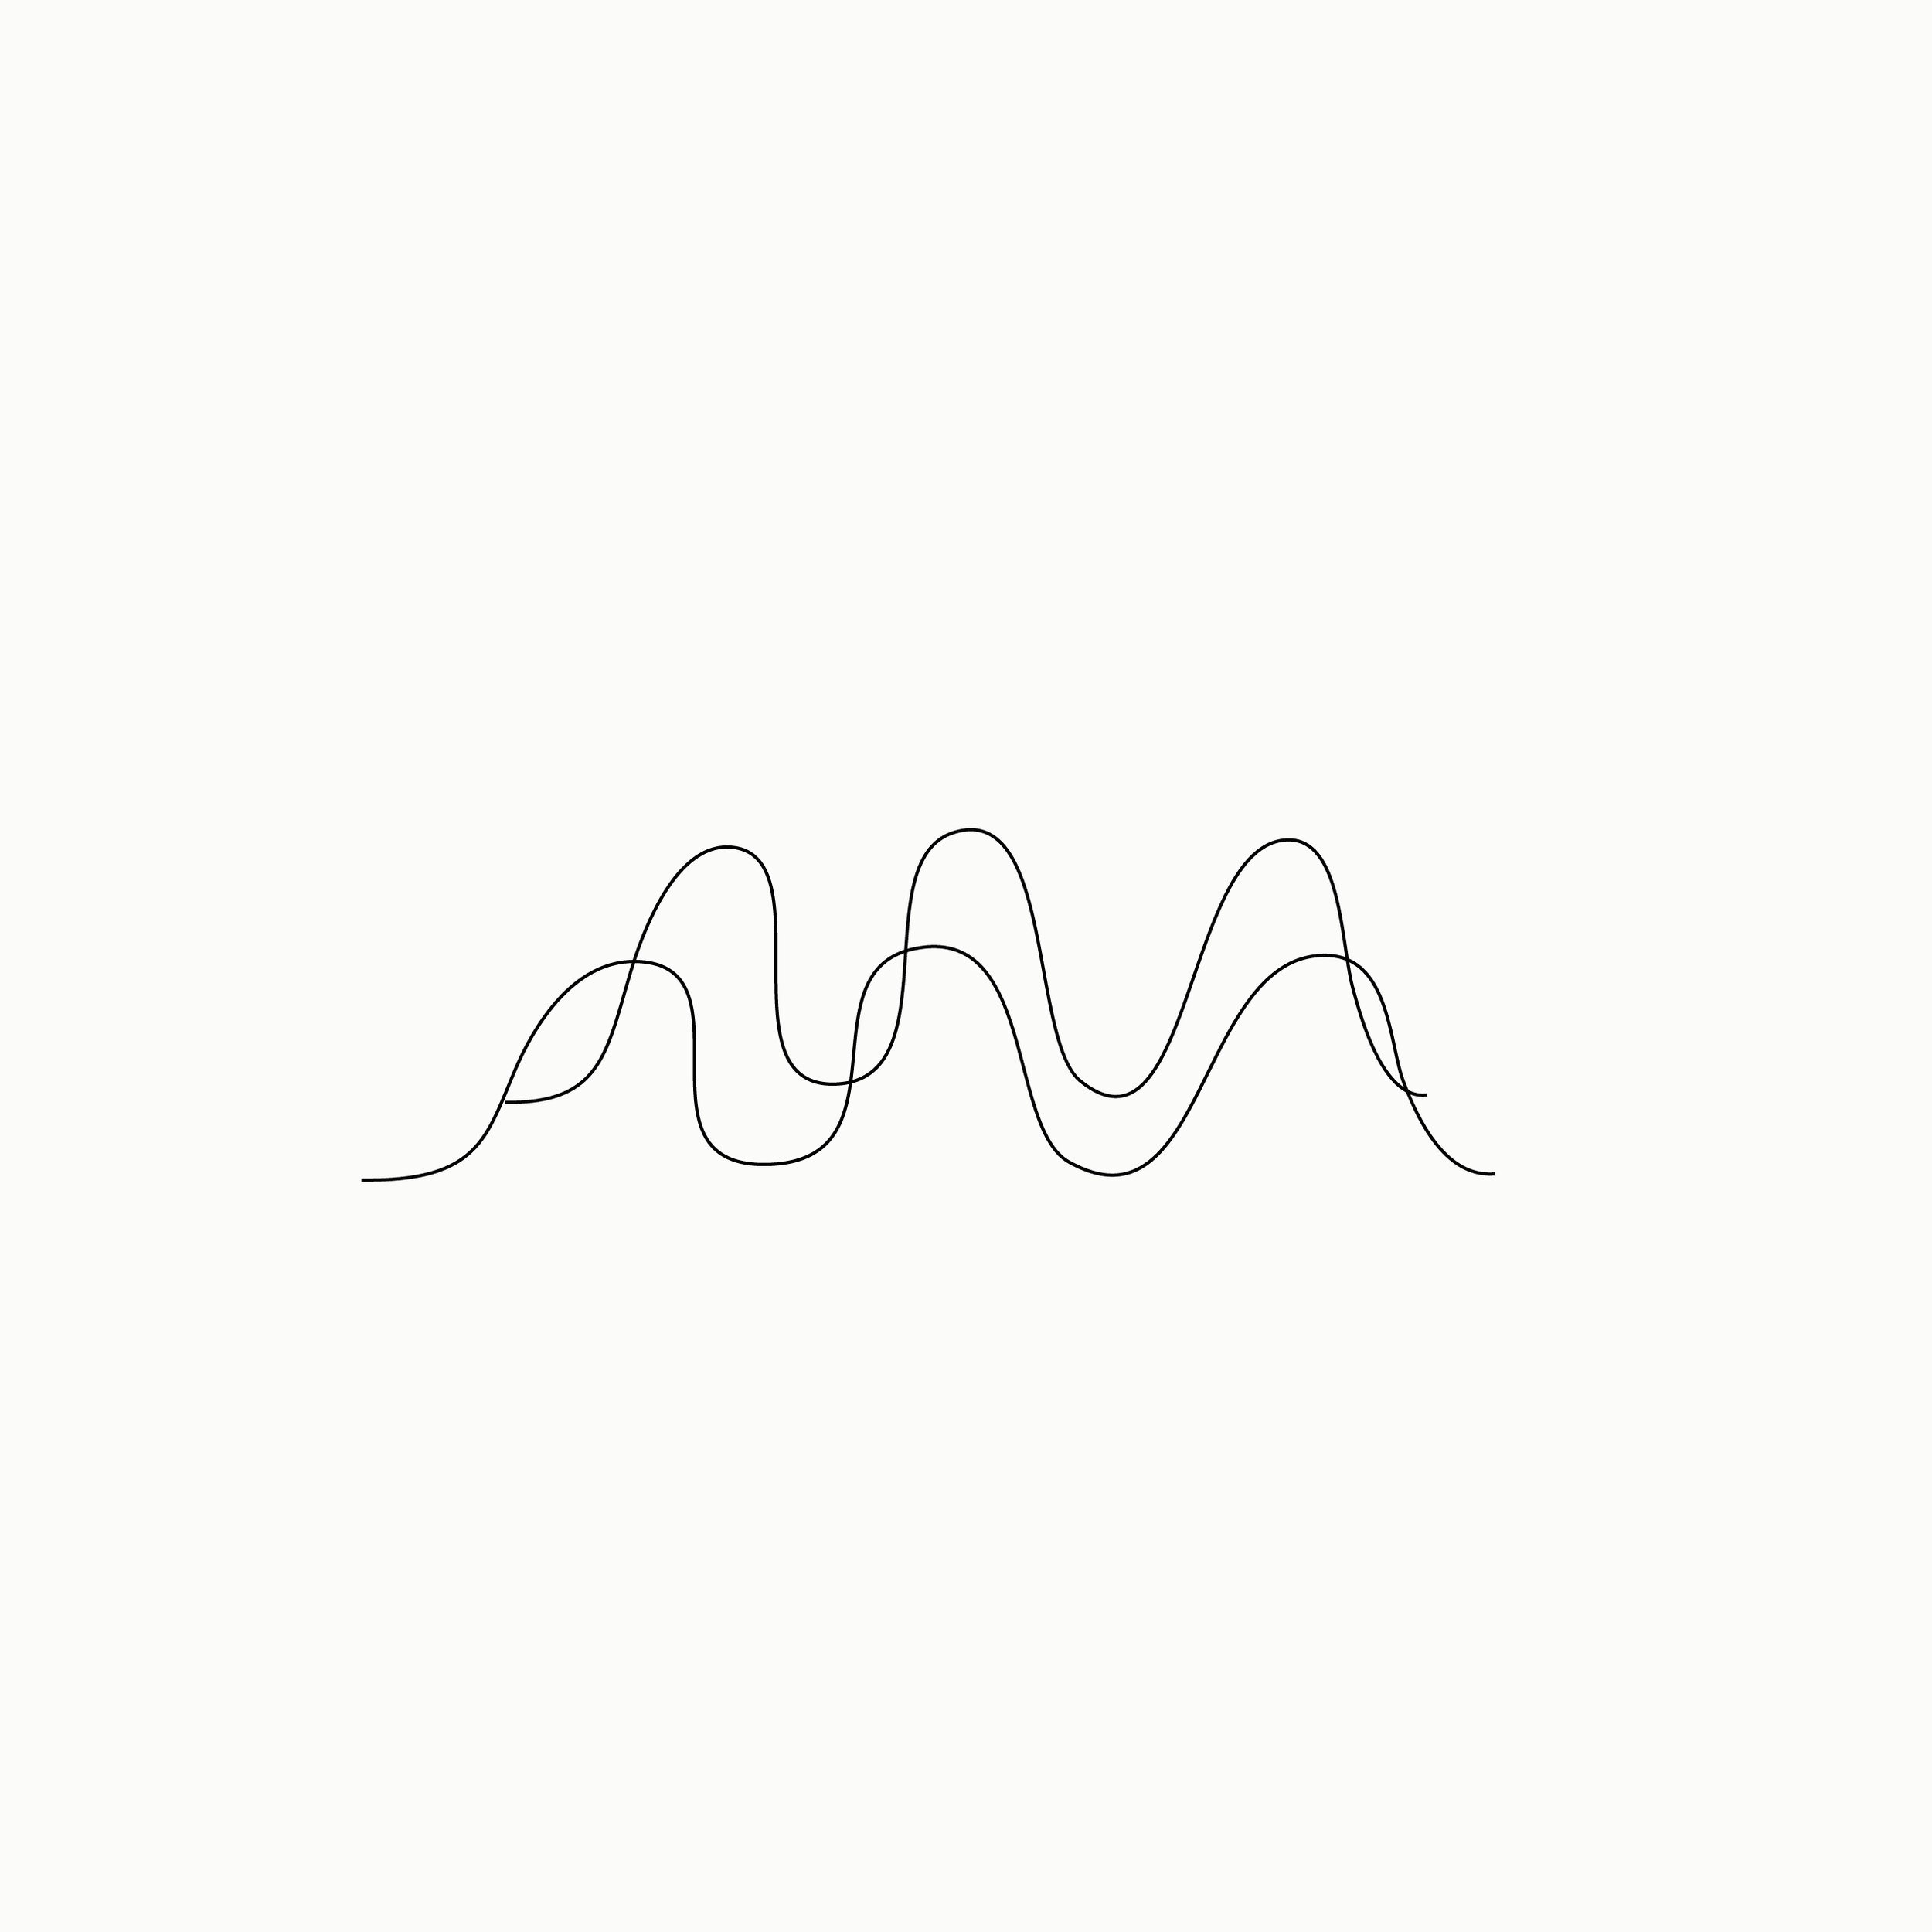 sound waves-01.png